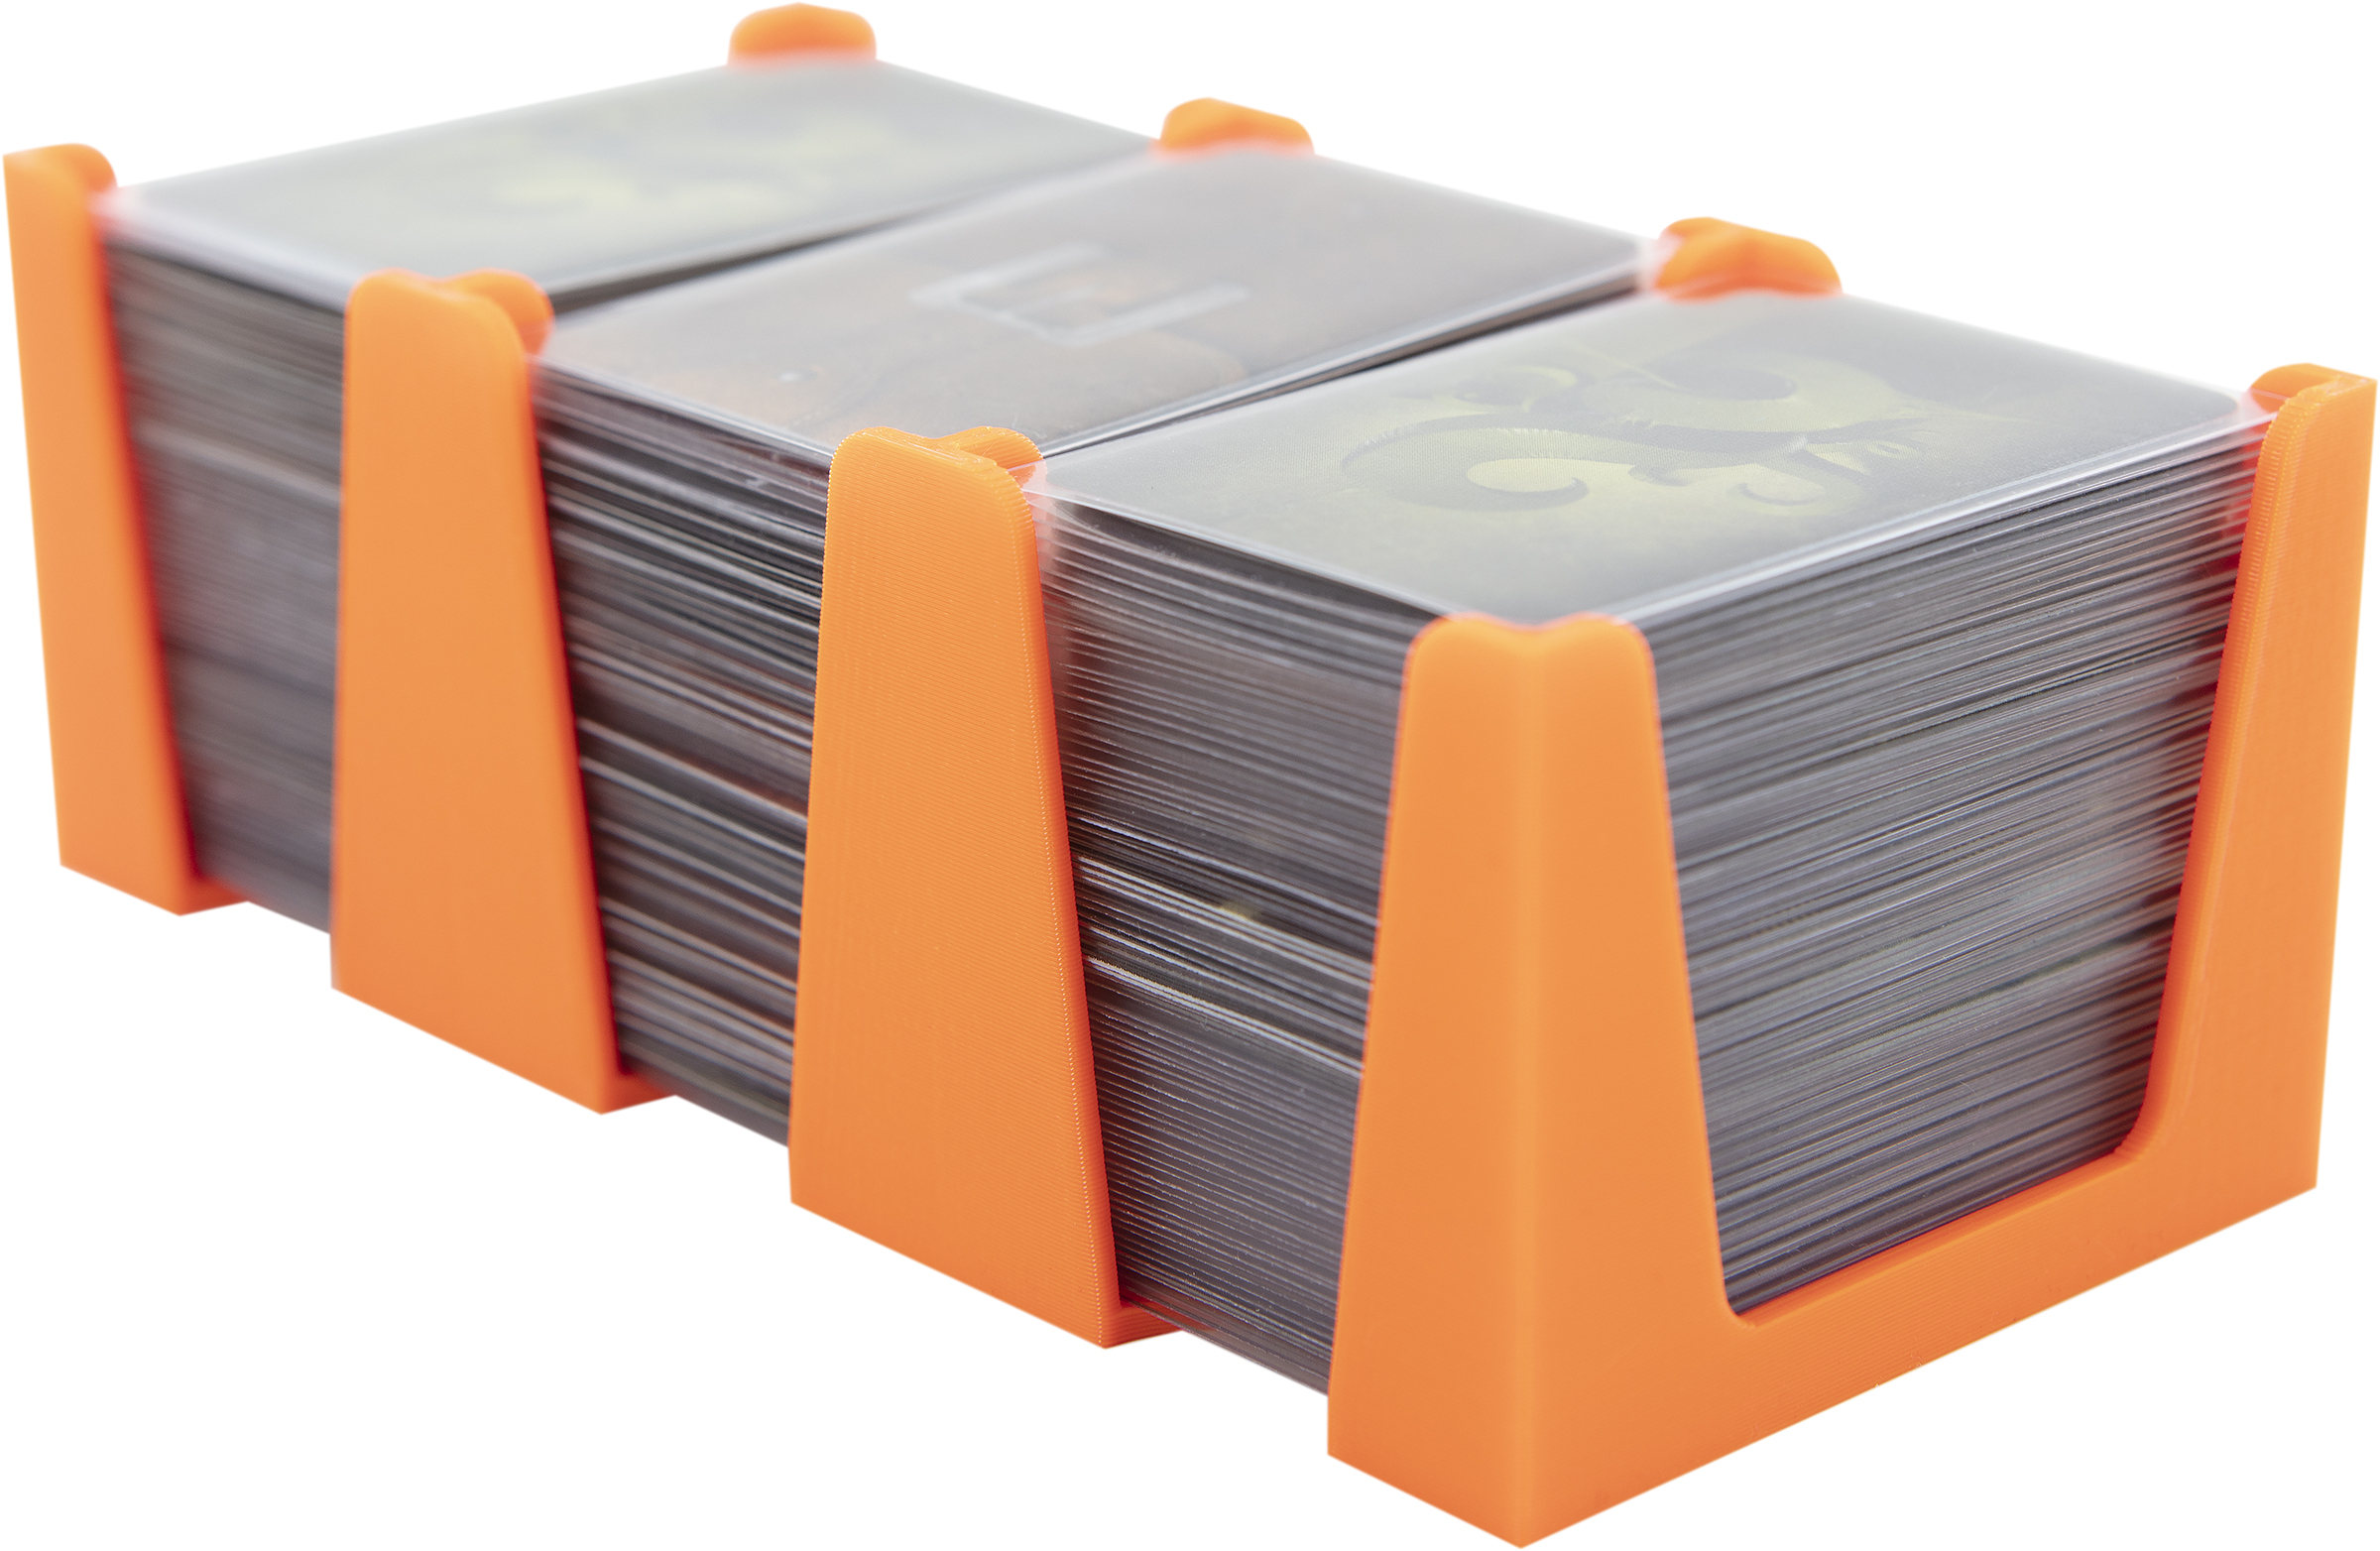 Feldherr Card Holder for game cards in Mini American Board Game Size - 450 cards - 3 trays